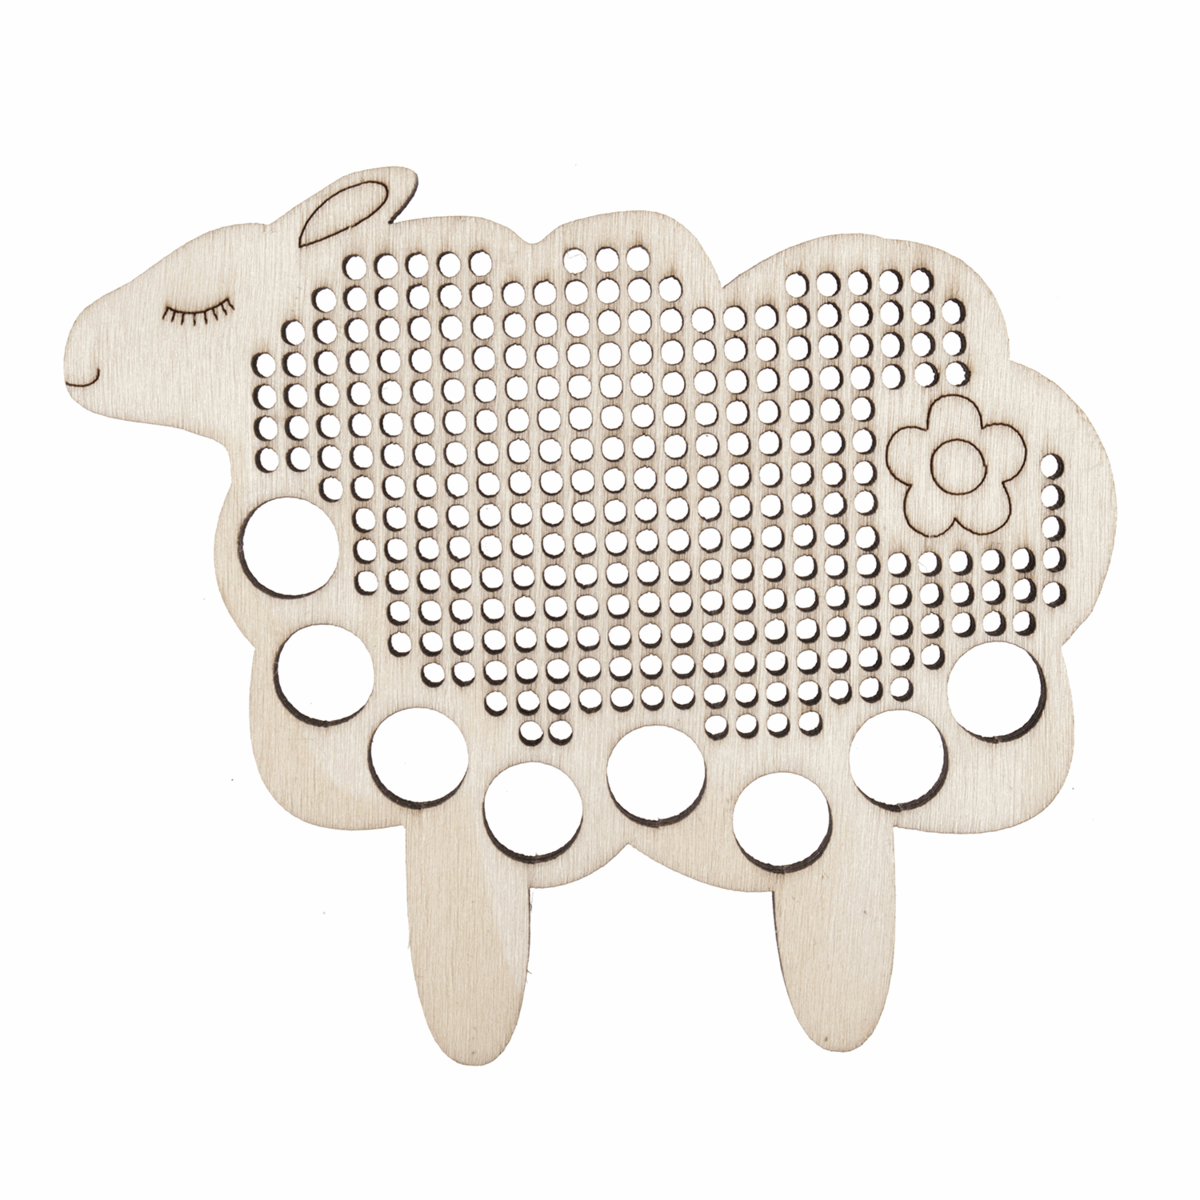 Picture of Embroidery Floss Holder: Sheep